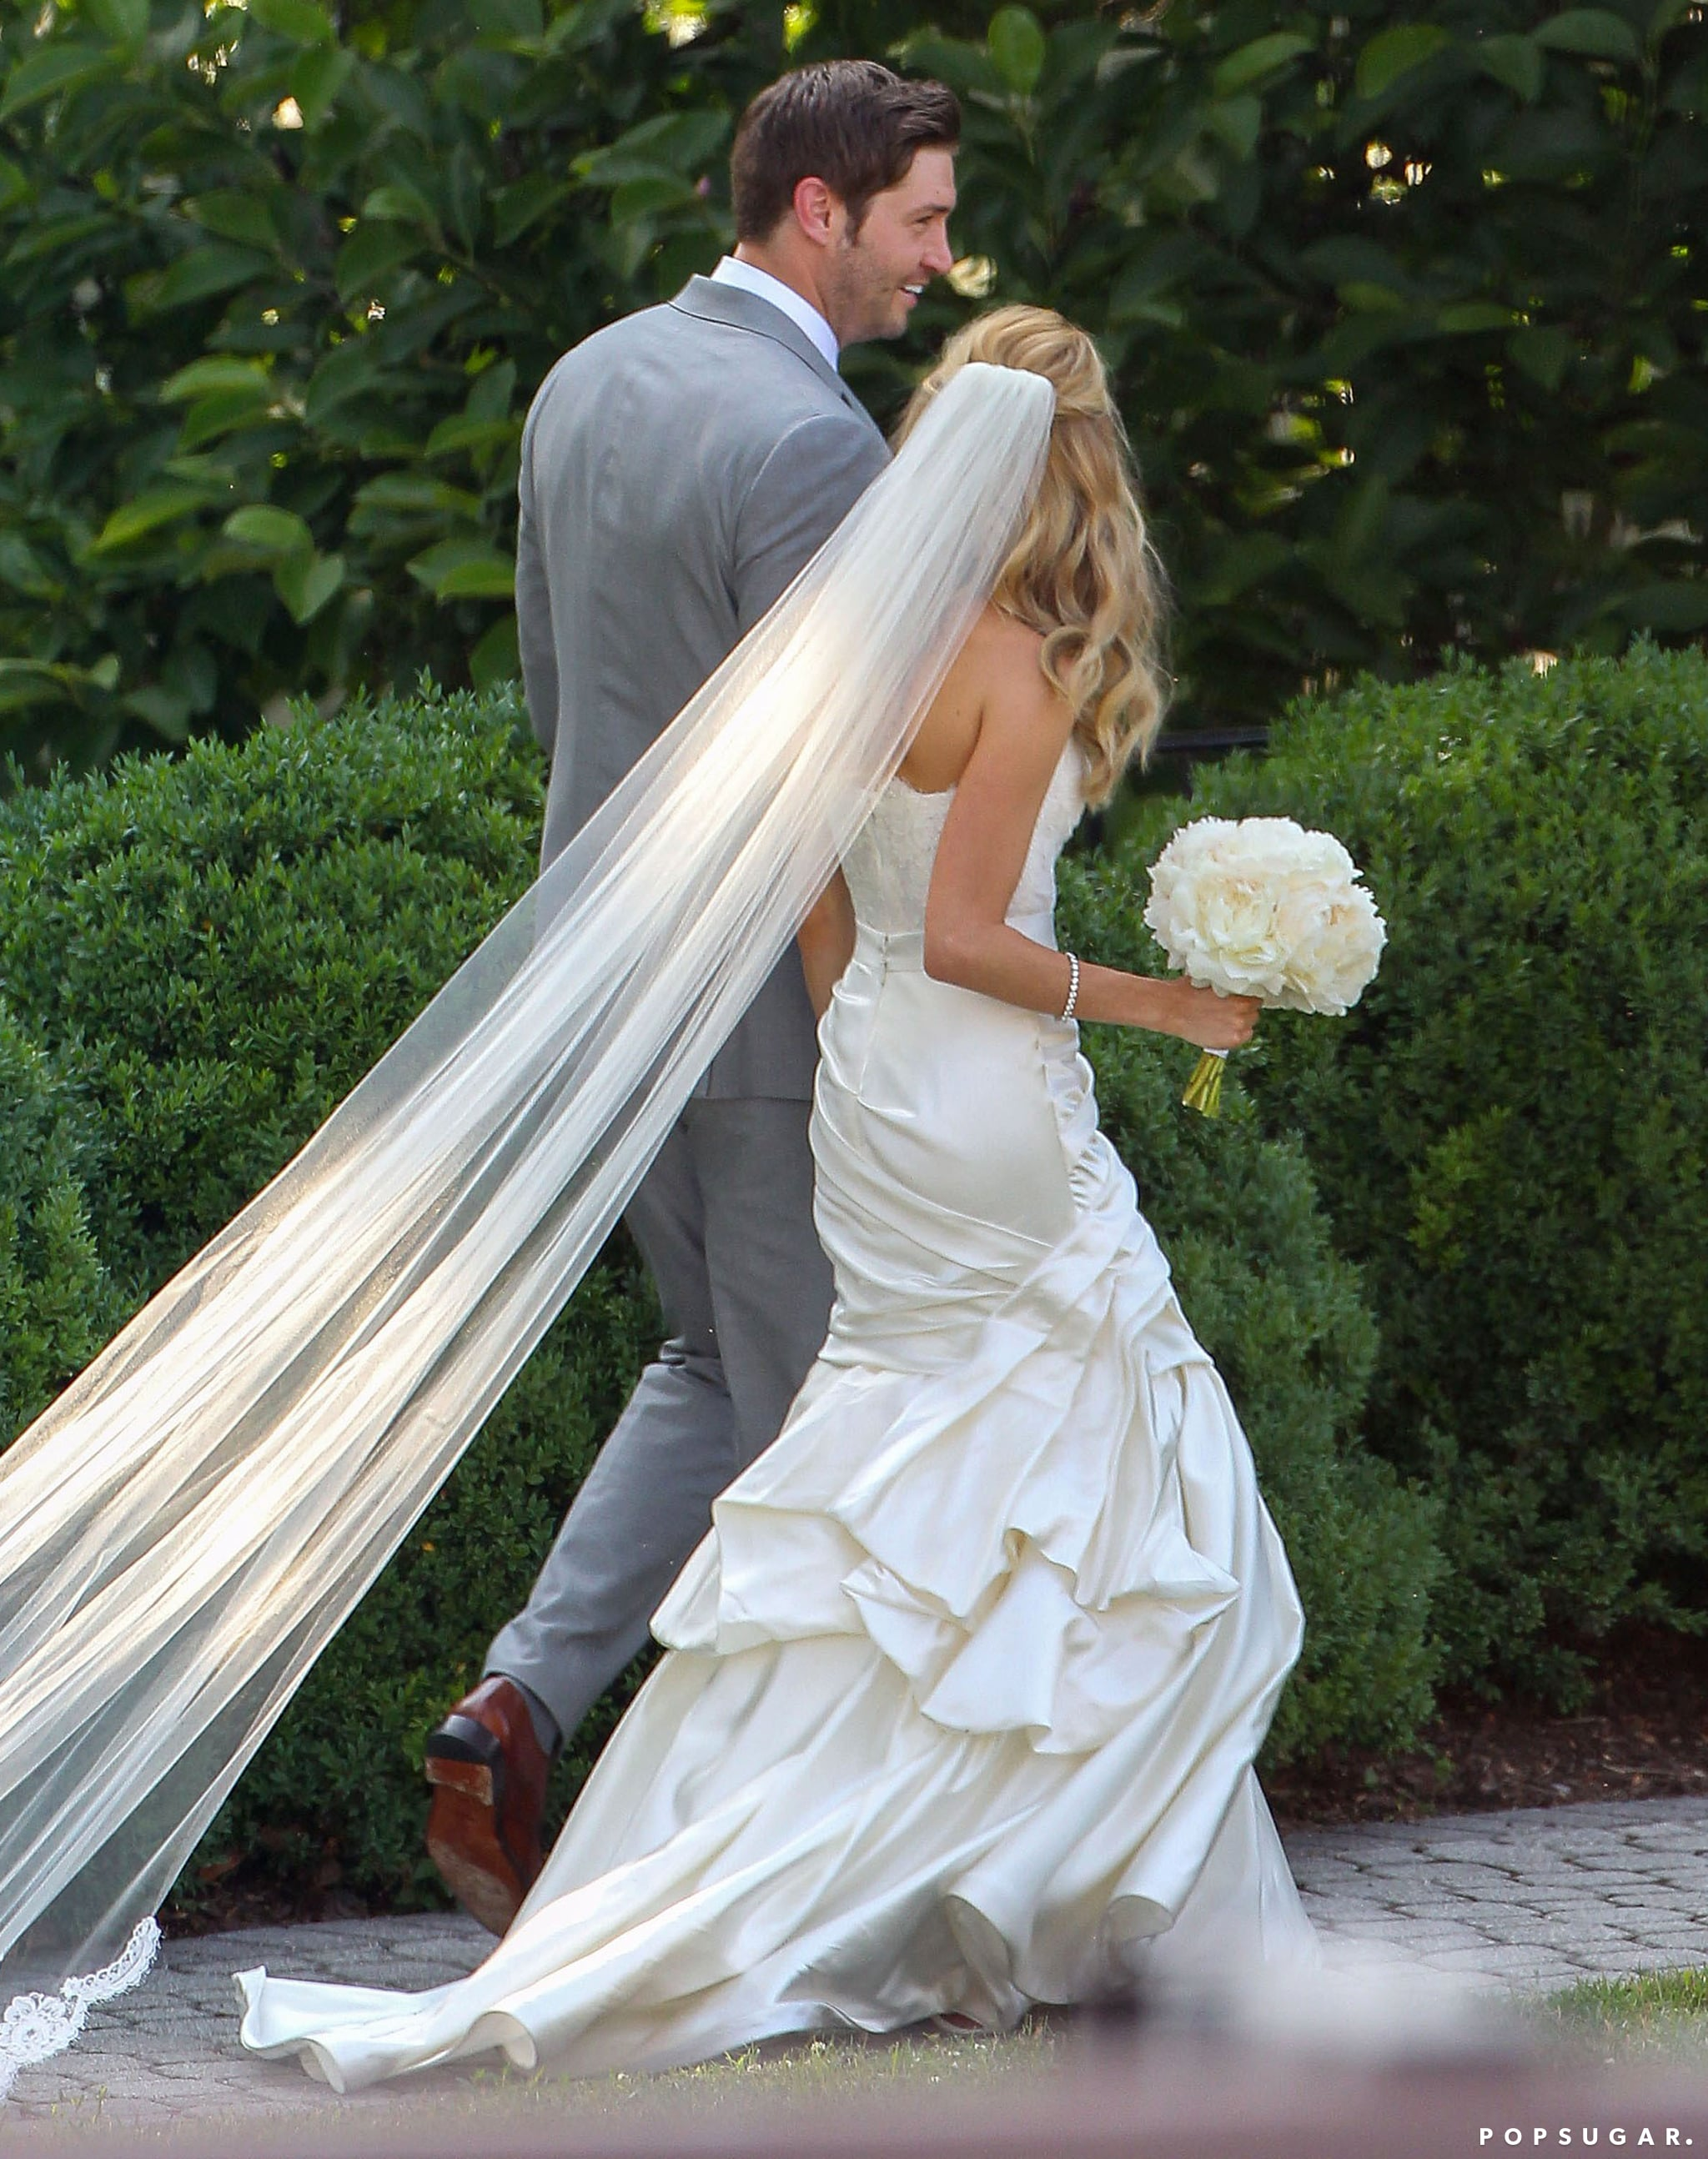 Kristin Cavallari and Jay Cutler tied the knot in Nashville.